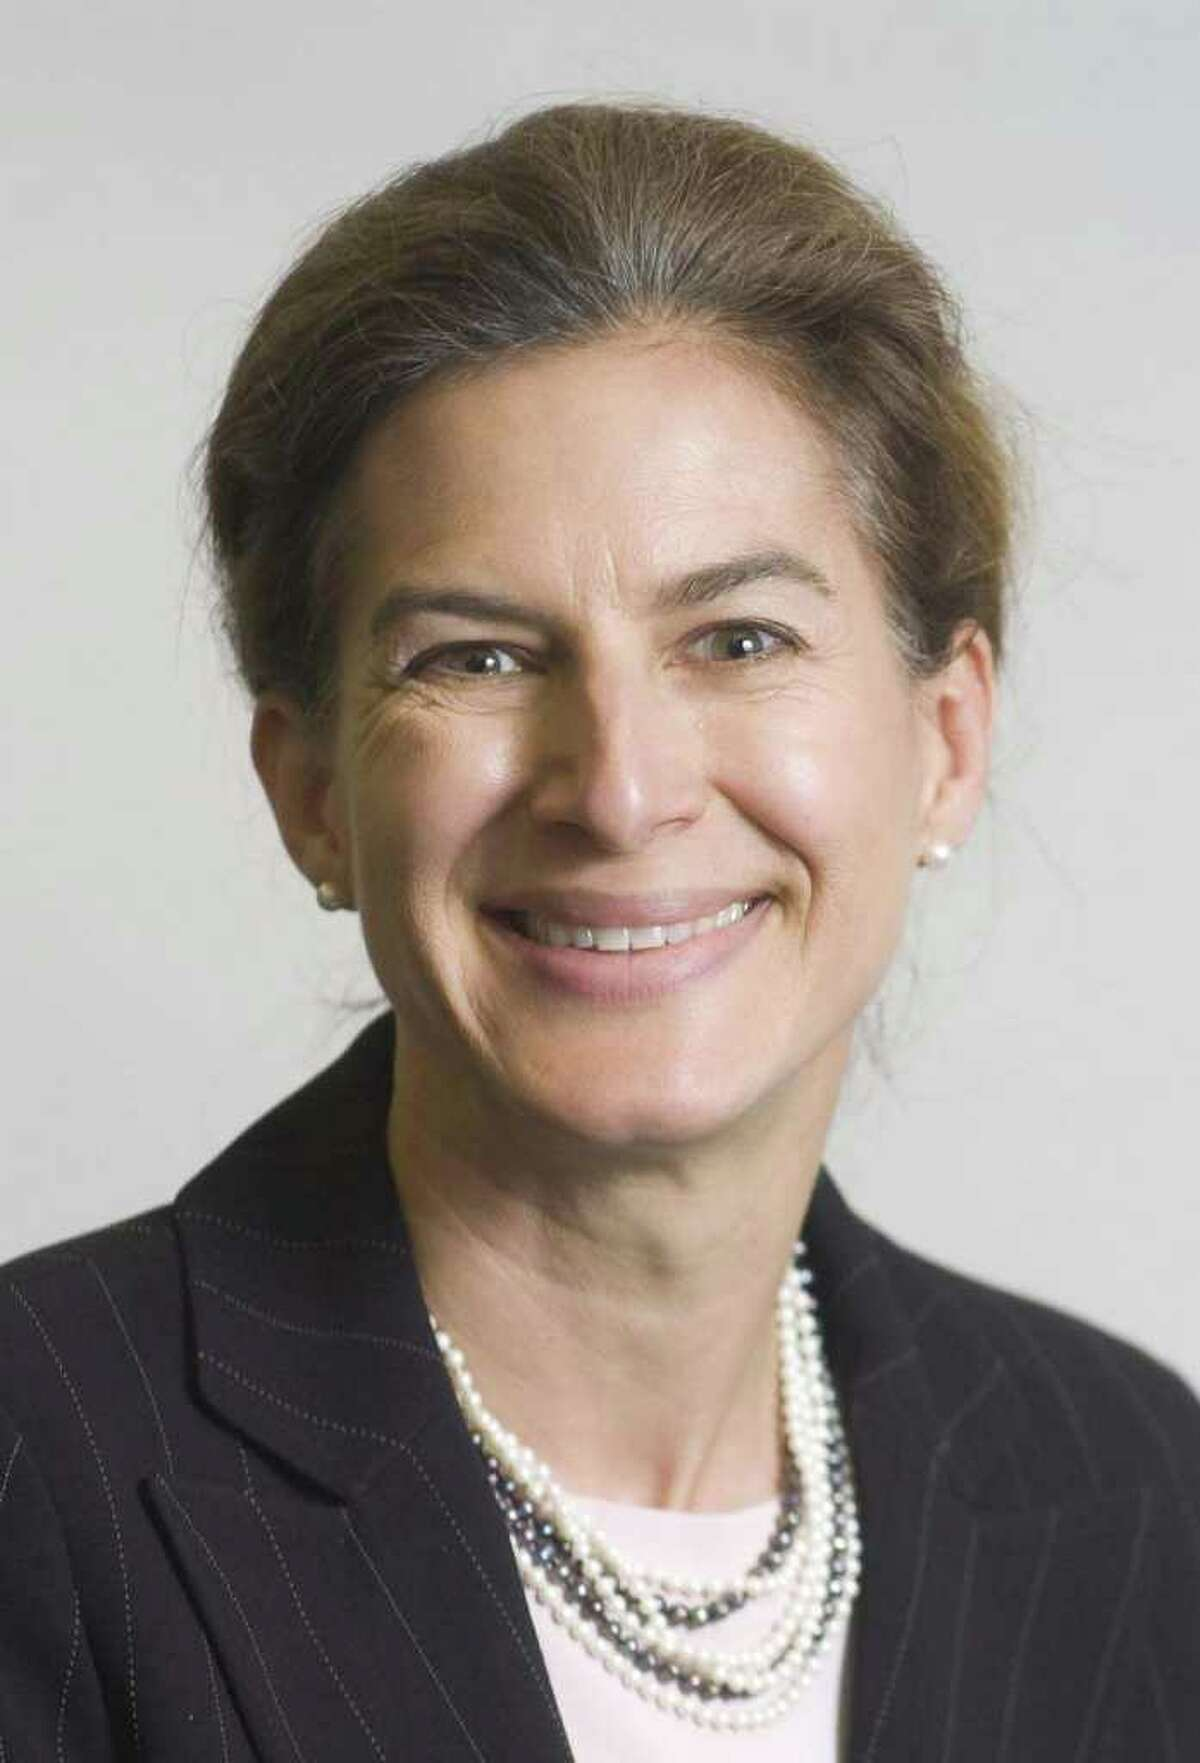 Susan Bysiewicz, former Connecticut Secretary of the State.